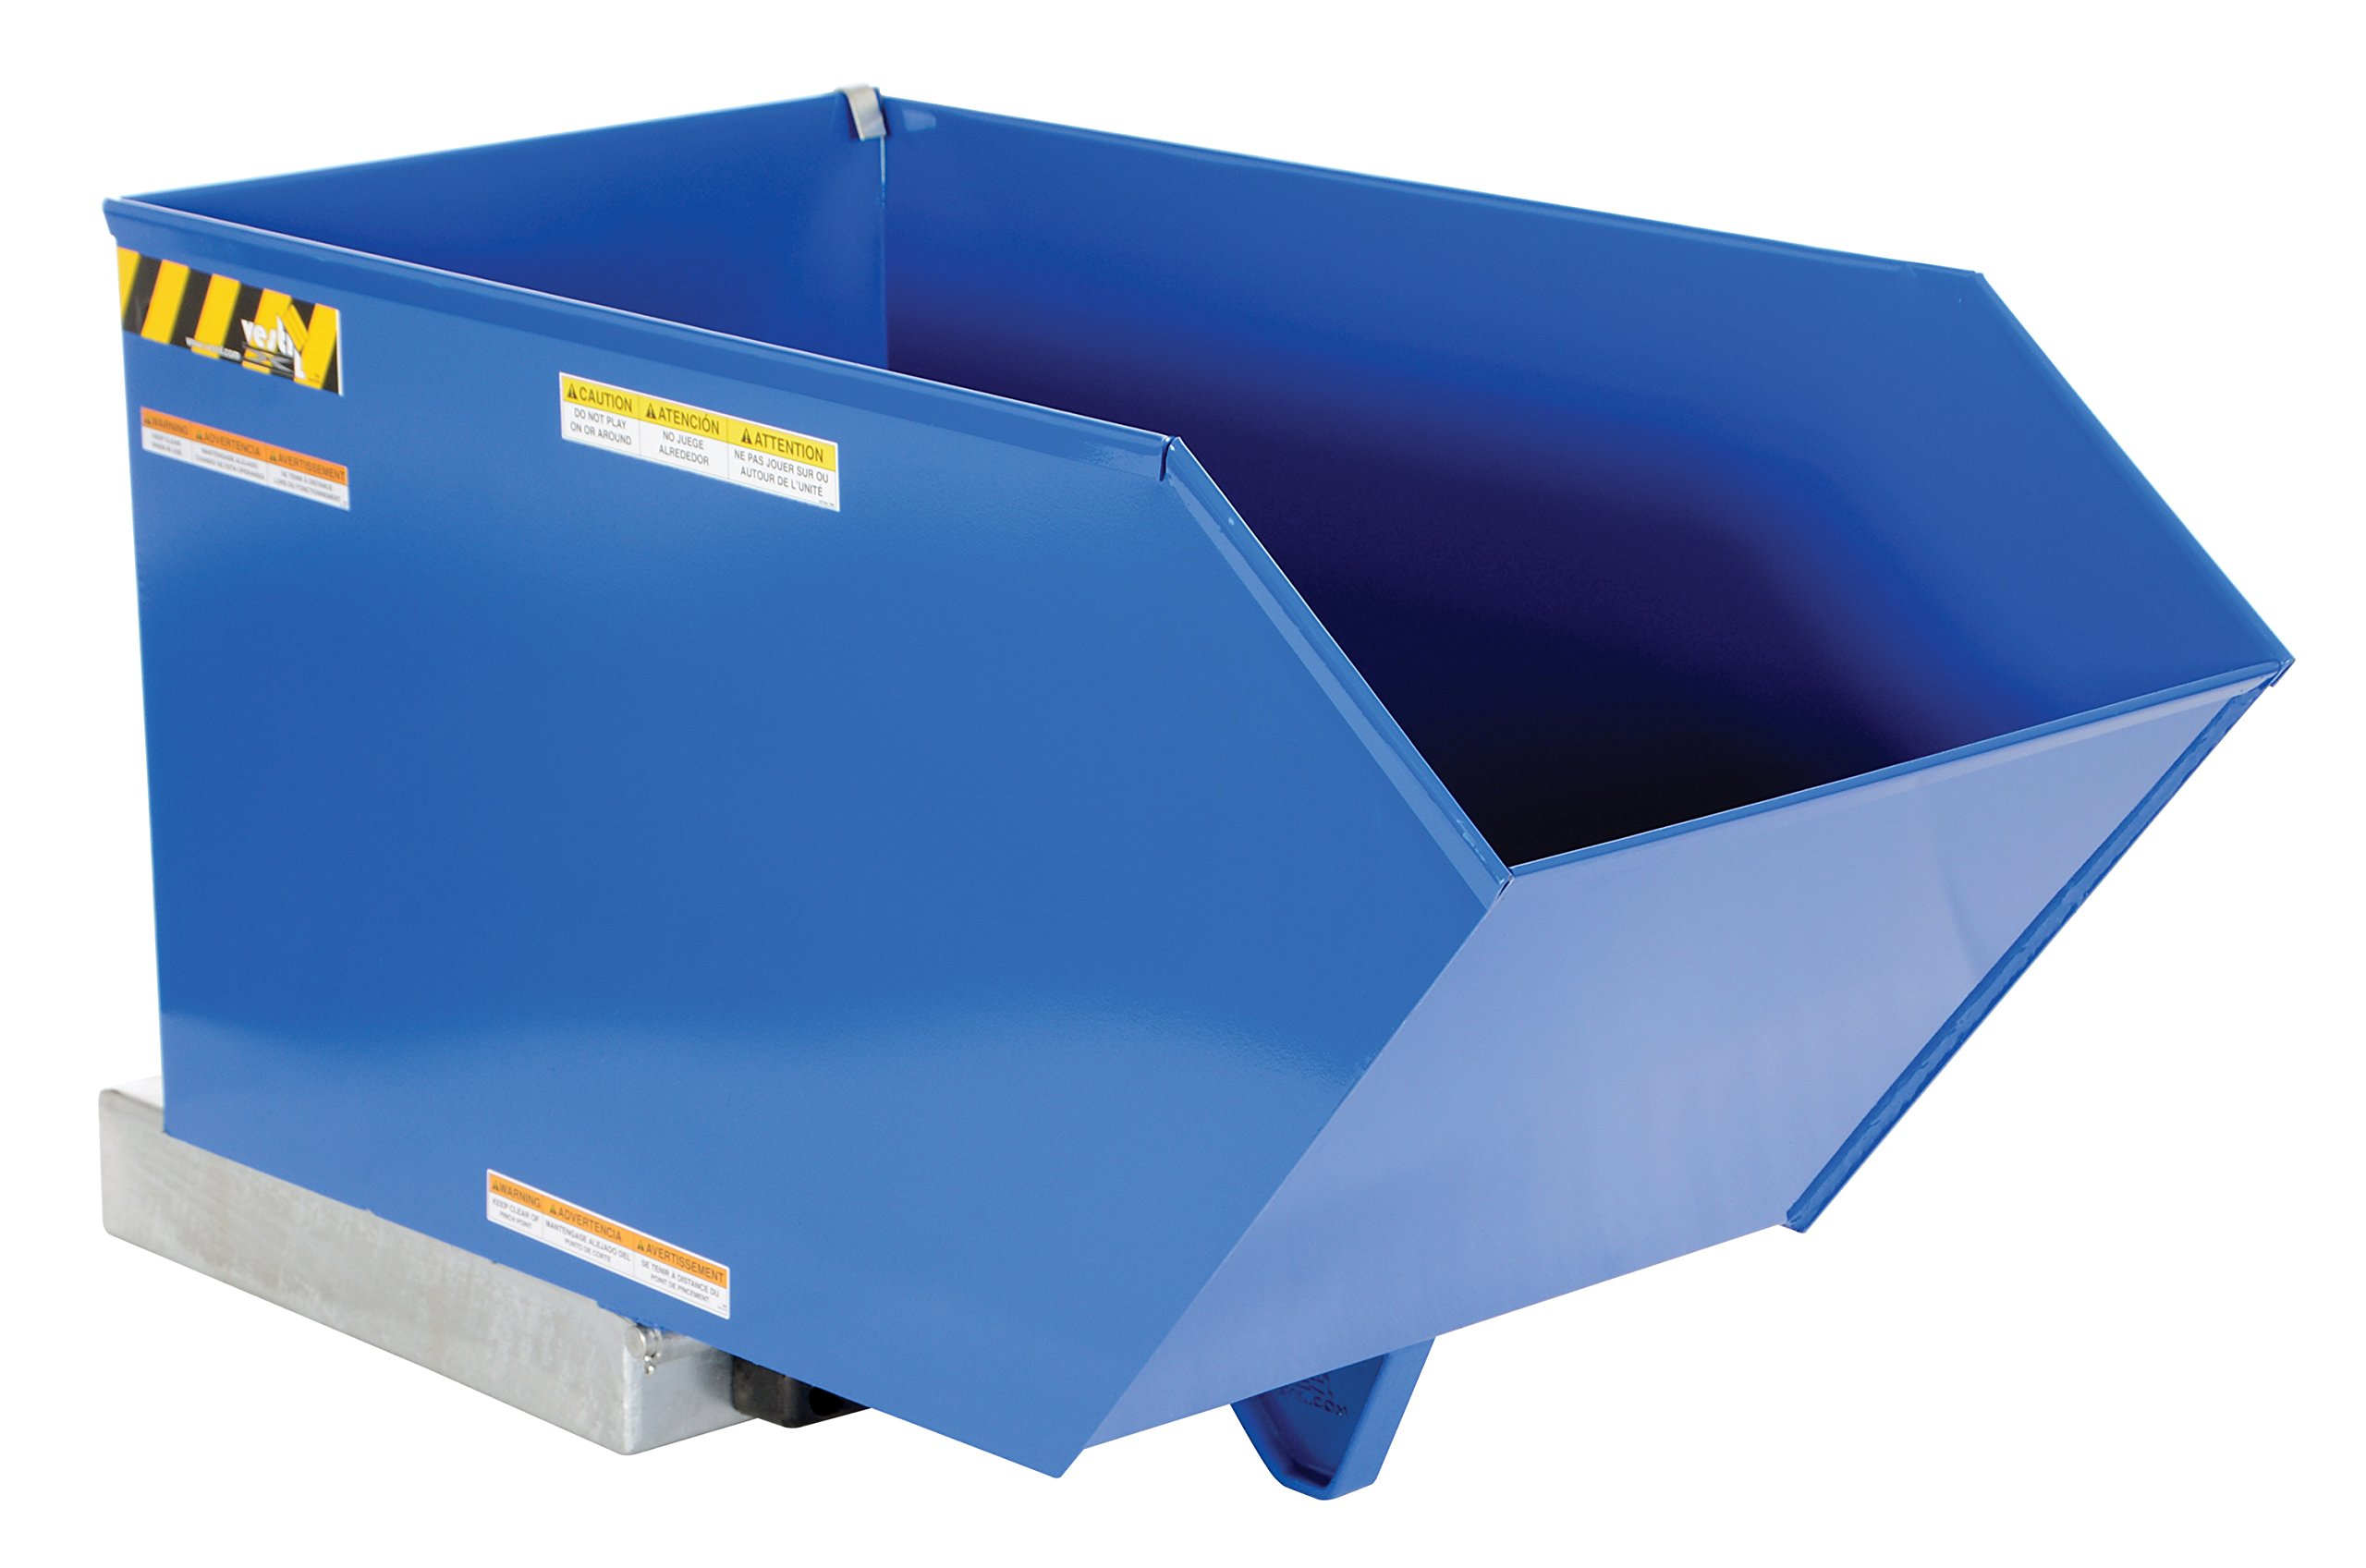 Vestil H-50-HD Low Profile Heavy Duty 90 Degree Self-Dumping Hopper, Steel, 6000 lbs Capacity, Overall W x L x H (in.) 27 x 51-1/4 x 28-3/16, Front Lip to Floor (in.) 20-5/8